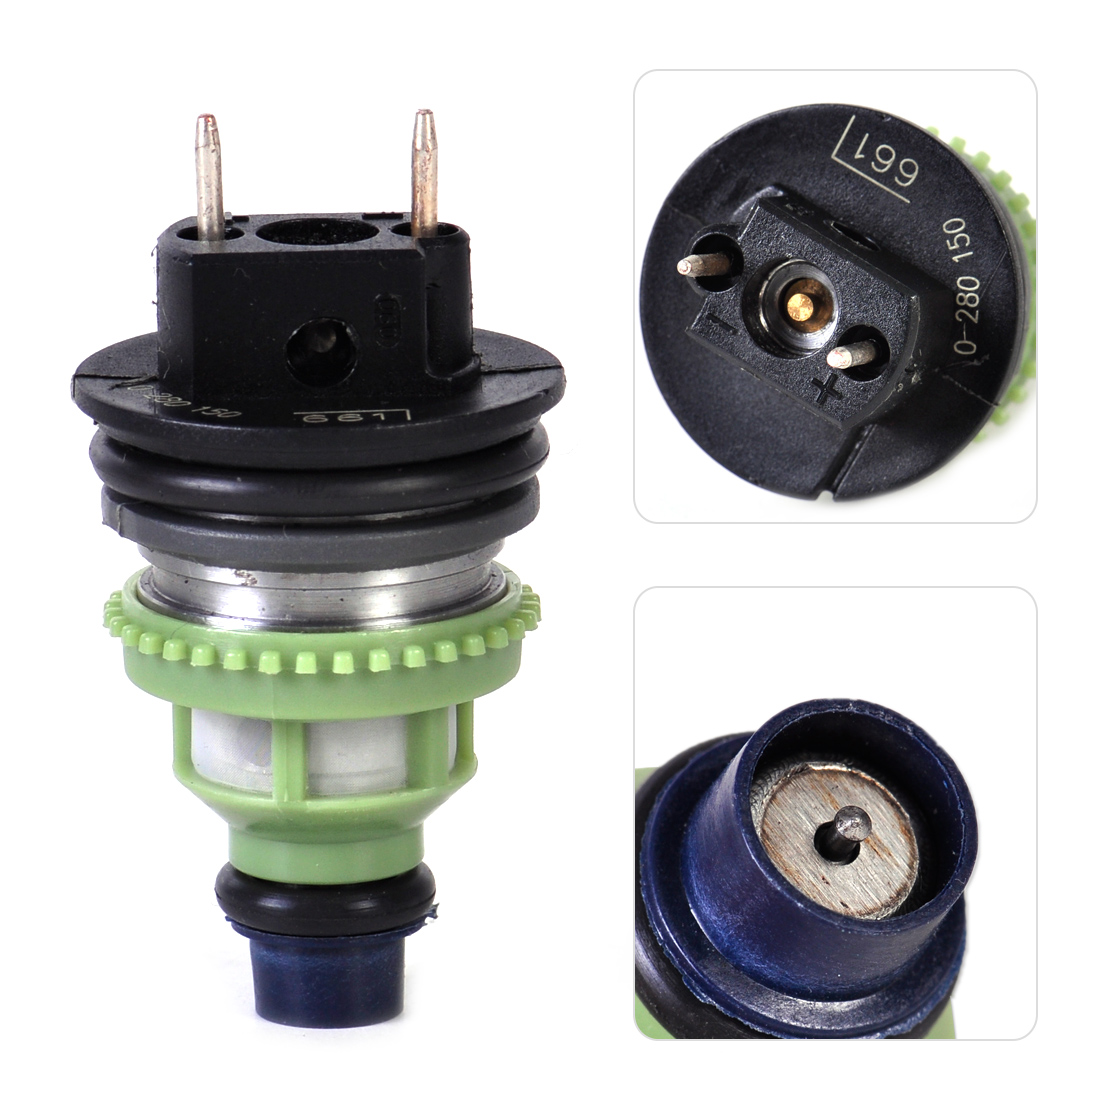 beler  Fuel Injector Fit for Suzuki Swift 1995 1996 1997 for Chevrolet Geo Metro 0280150661 96063614 1955002160 15710-60B50beler  Fuel Injector Fit for Suzuki Swift 1995 1996 1997 for Chevrolet Geo Metro 0280150661 96063614 1955002160 15710-60B50